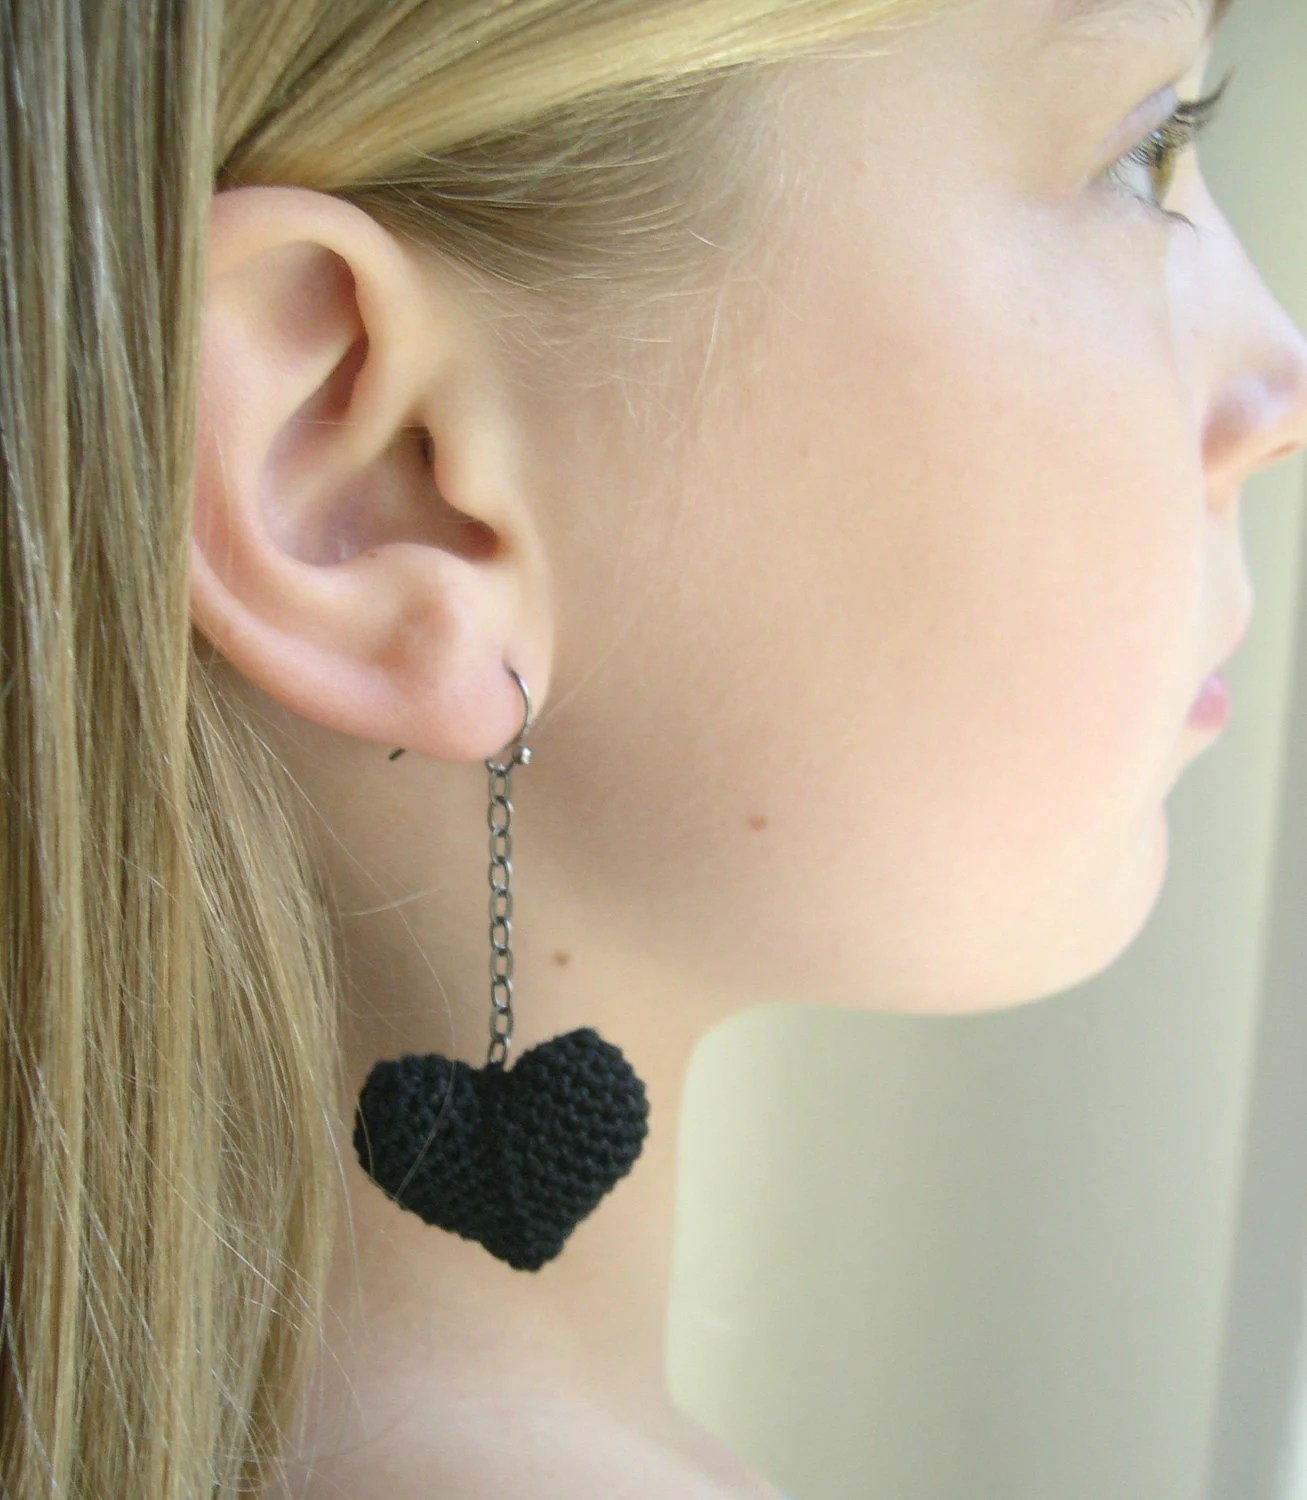 Black Dangle Heart Crochet Earrings - Girlfriend gift idea - Best valentines day present - Gift for her - Lacy Trends 2013 - Statement - MaryKCreation